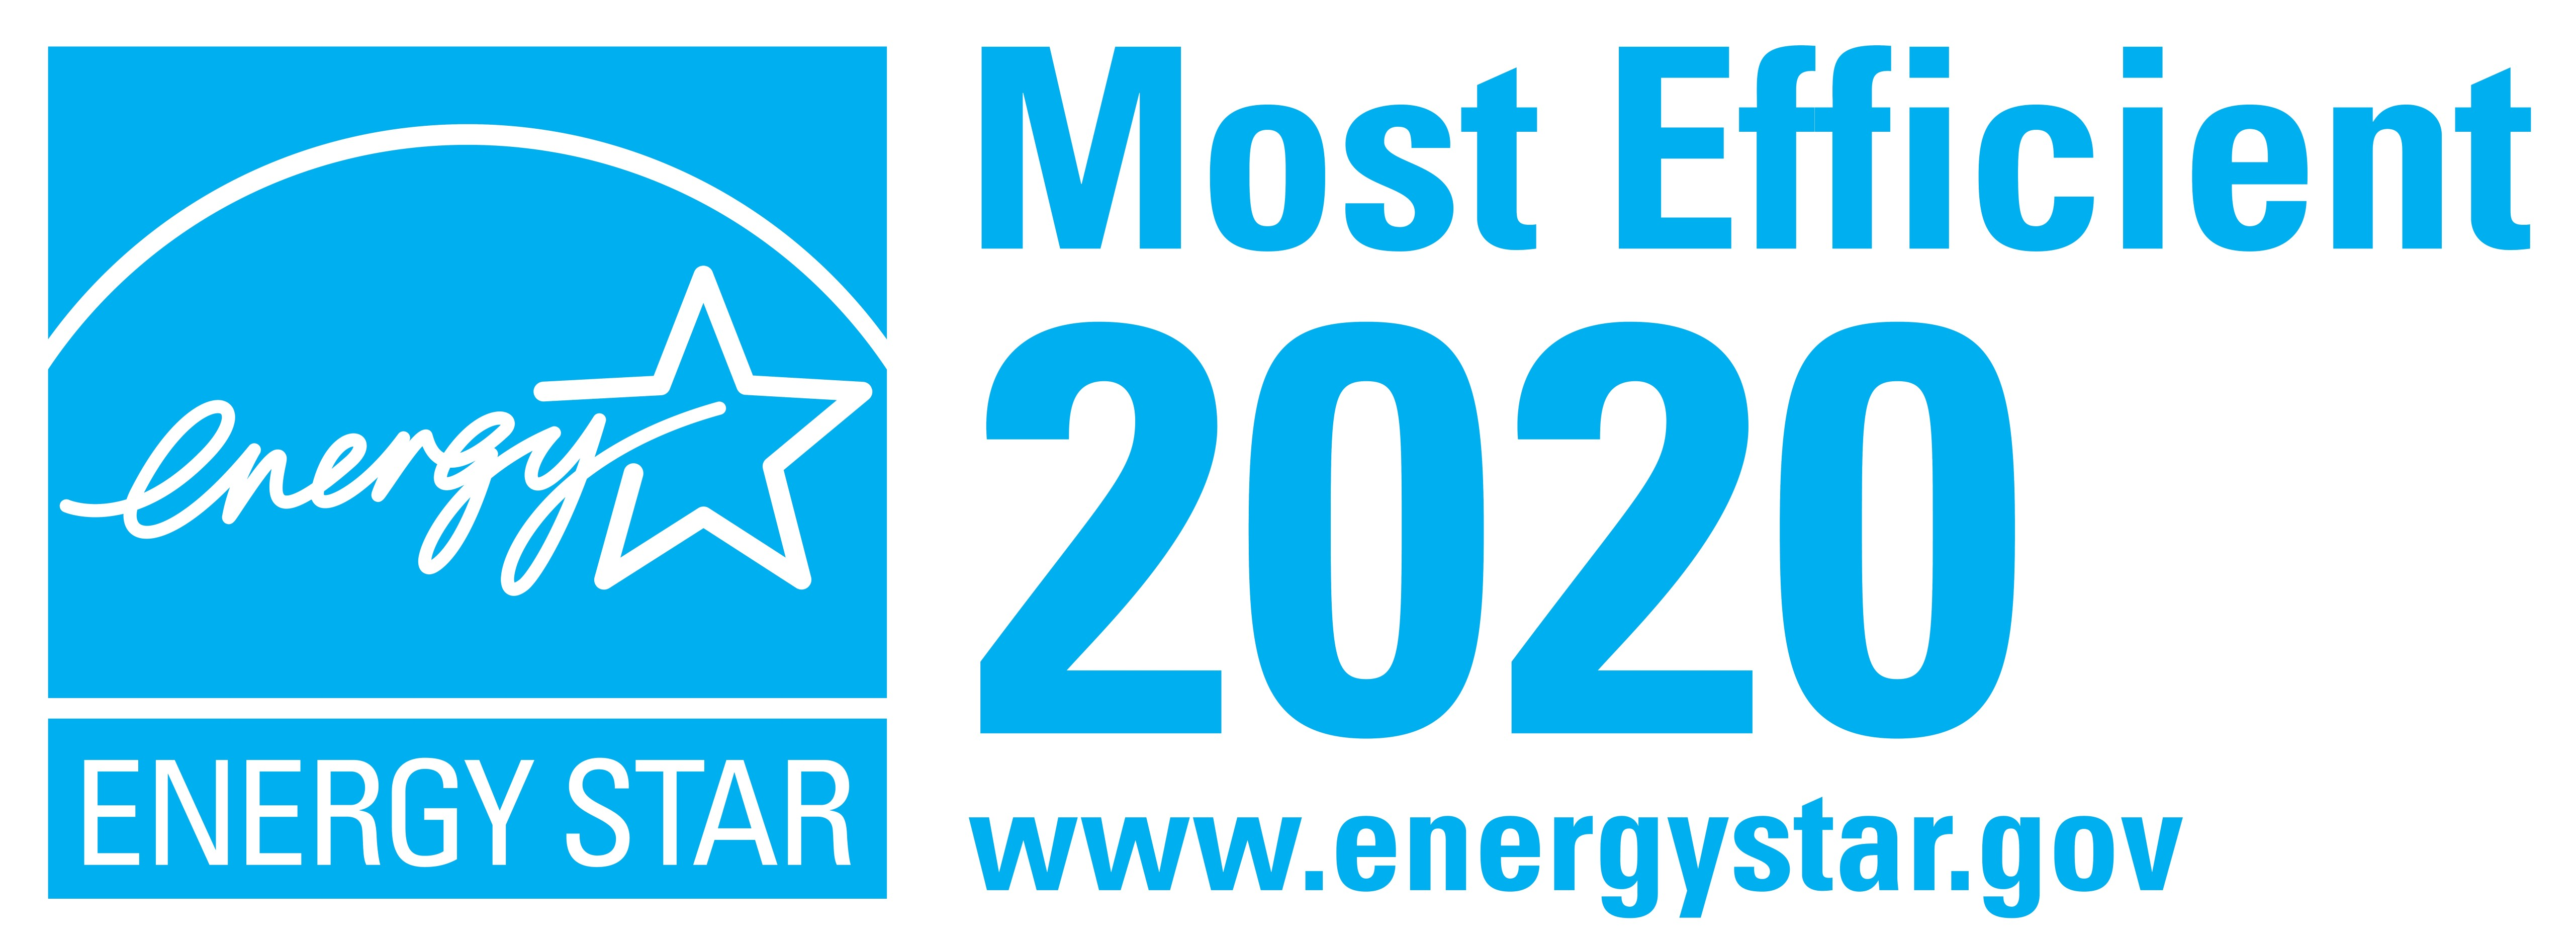 2020 ENERGY STAR Most Efficient